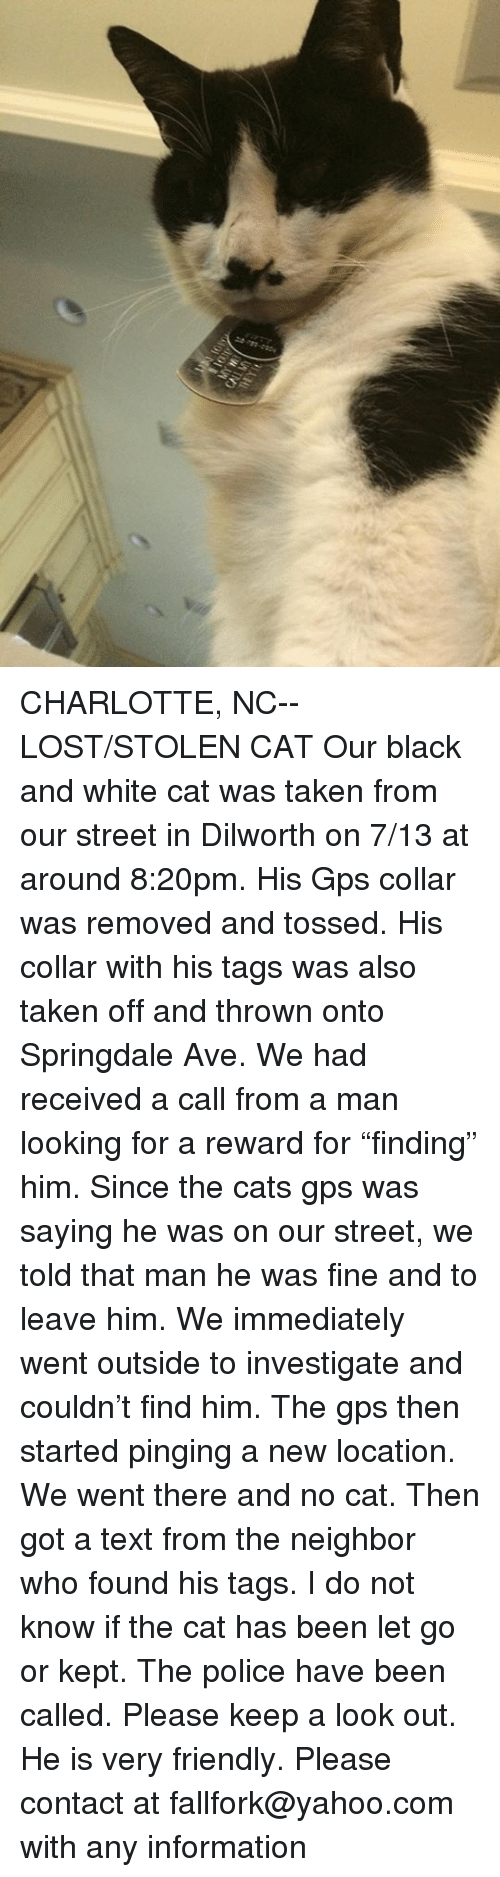 "Cats, Memes, and Police: CHARLOTTE, NC-- LOST/STOLEN CAT  Our black and white cat was taken from our street in Dilworth on 7/13 at around 8:20pm. His Gps collar was removed and tossed. His collar with his tags was also taken off and thrown onto Springdale Ave. We had received a call from a man looking for a reward for ""finding"" him. Since the cats gps was saying he was on our street, we told that man he was fine and to leave him. We immediately went outside to investigate and couldn't find him. The gps then started pinging a new location. We went there and no cat. Then got a text from the neighbor who found his tags. I do not know if the cat has been let go or kept. The police have been called. Please keep a look out. He is very friendly. Please contact at fallfork@yahoo.com with any information"